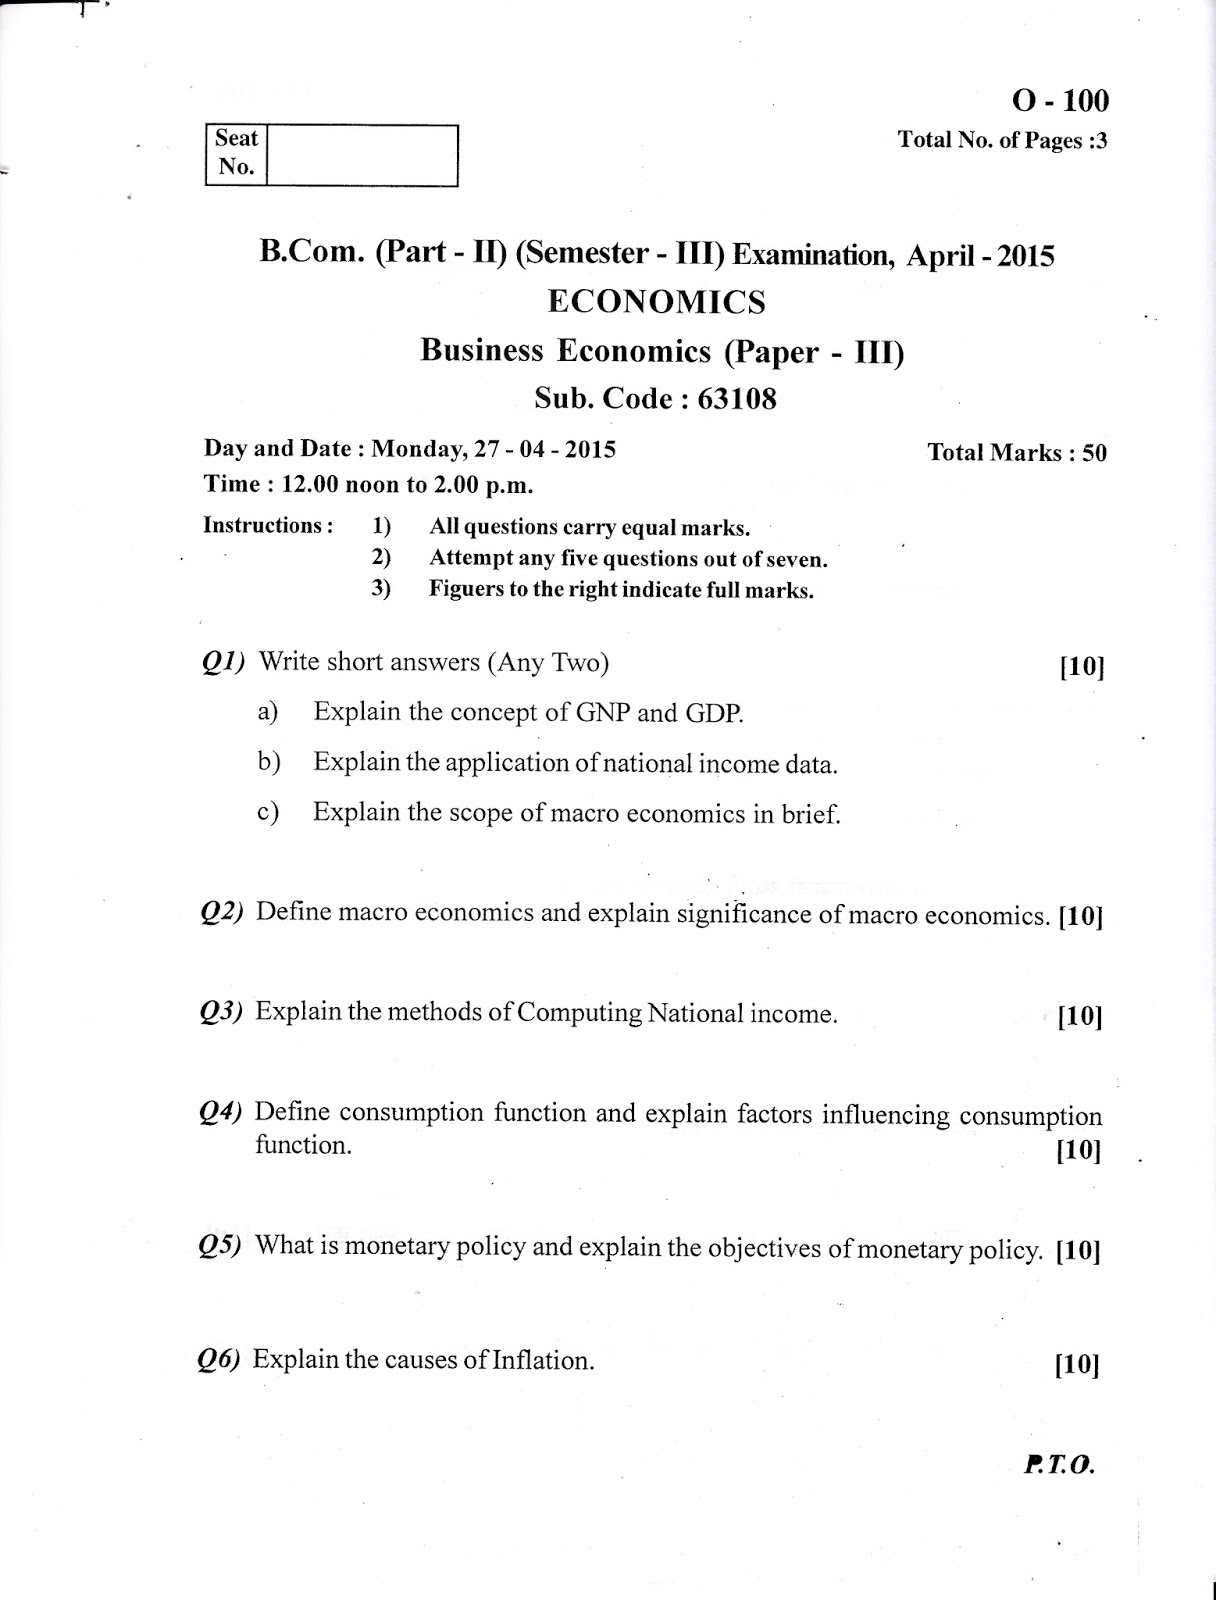 Economics Chapter 1 Questions And Answers